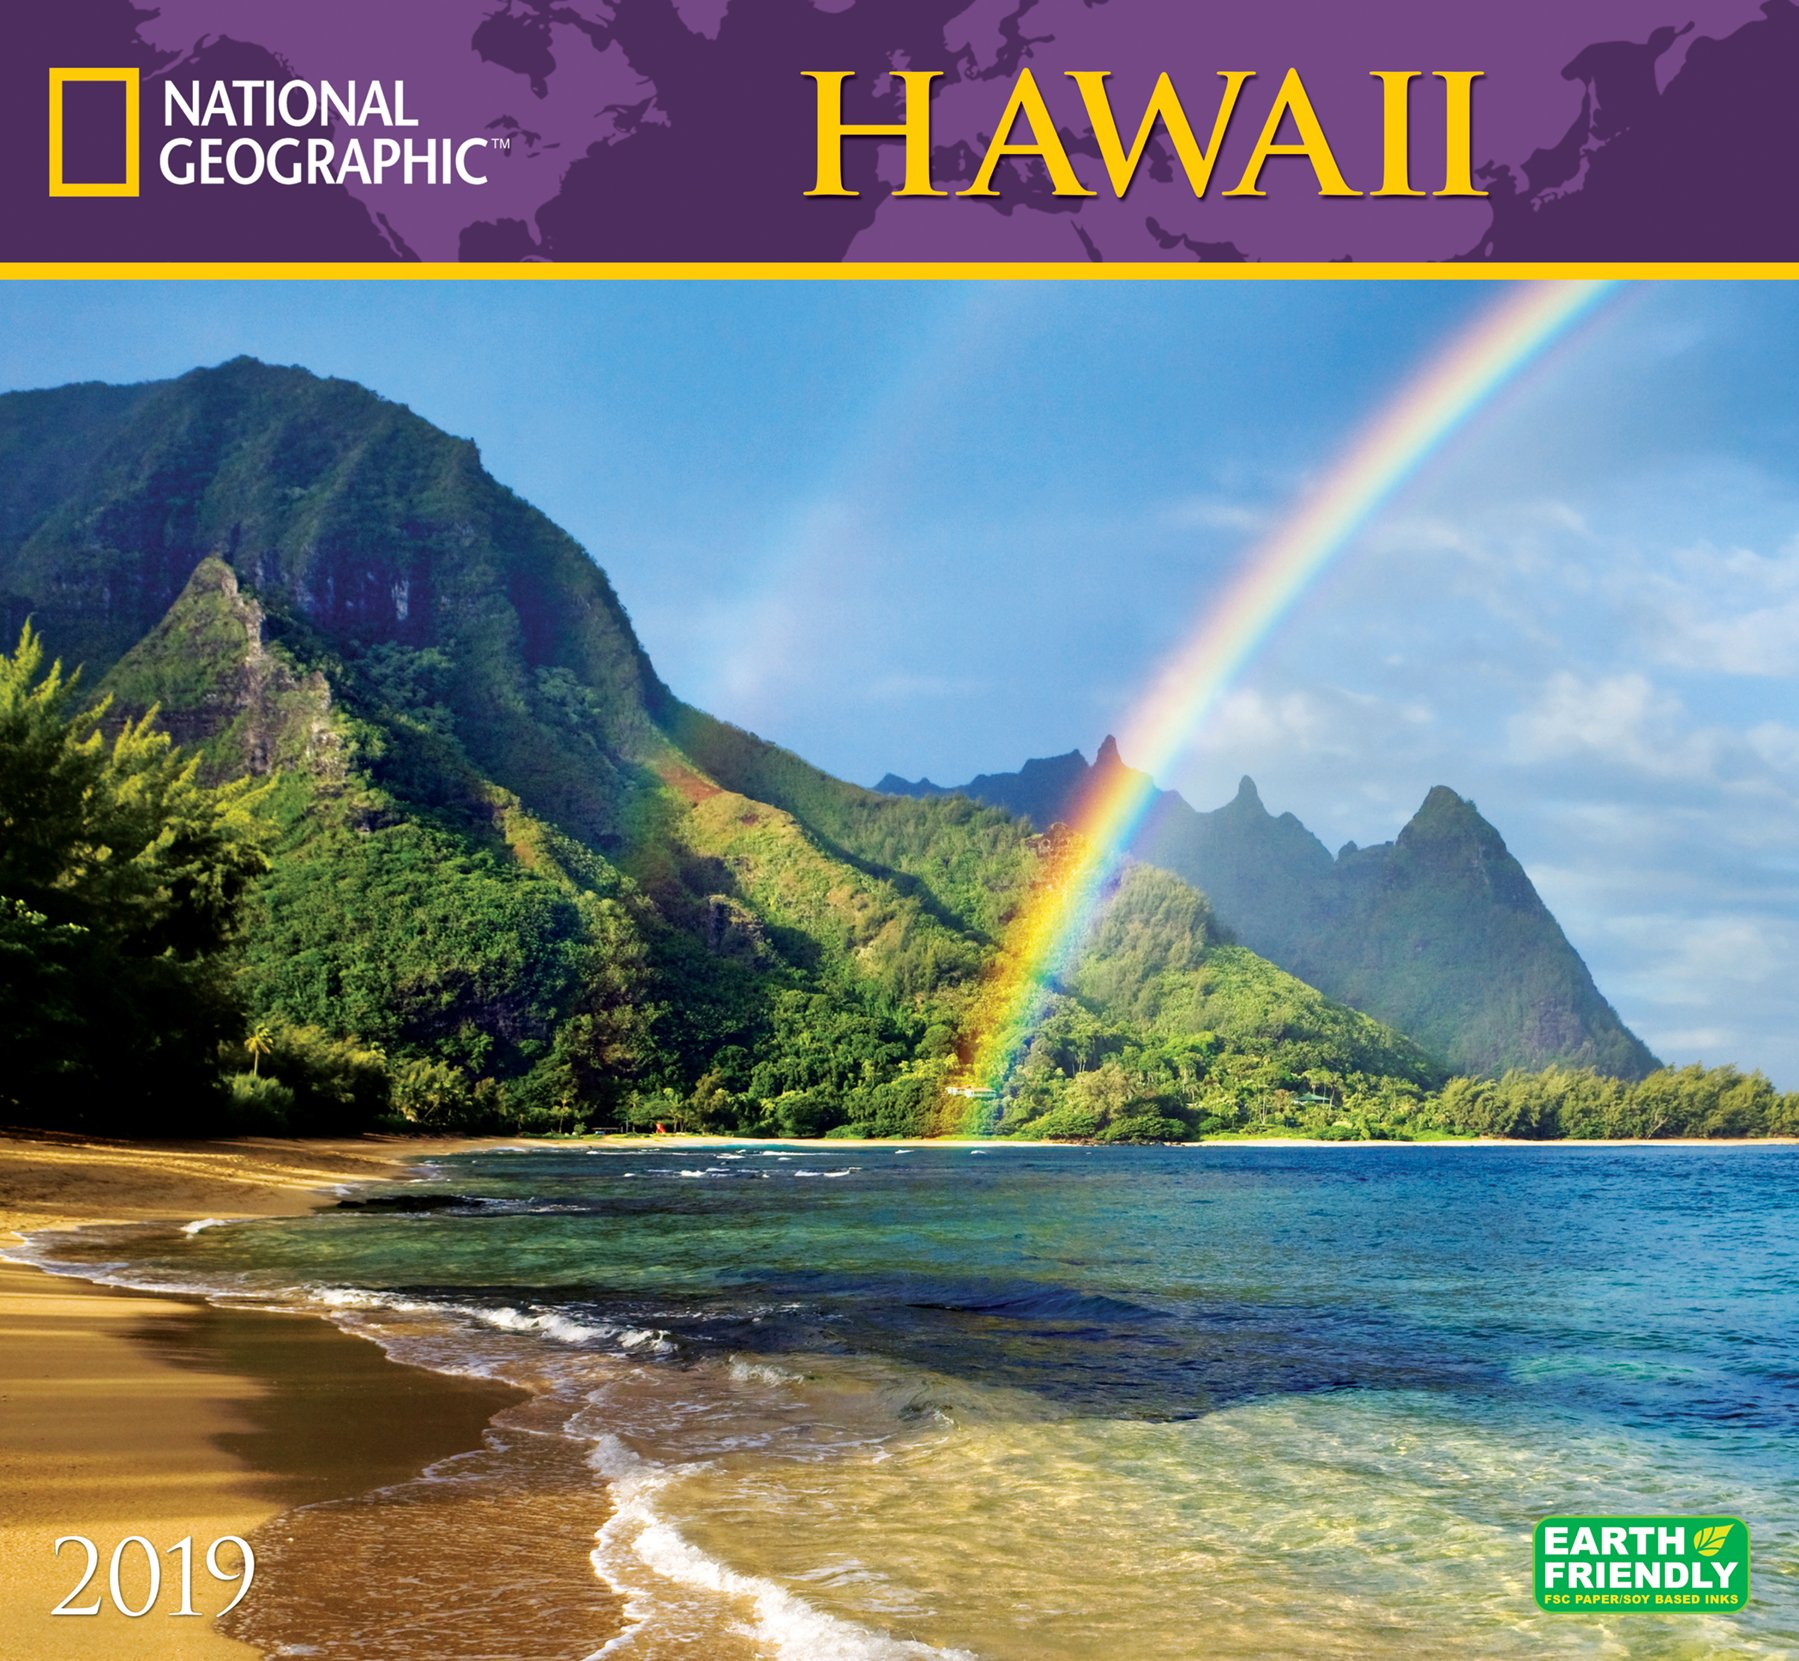 national geographic hawaii 2019 wall calendar